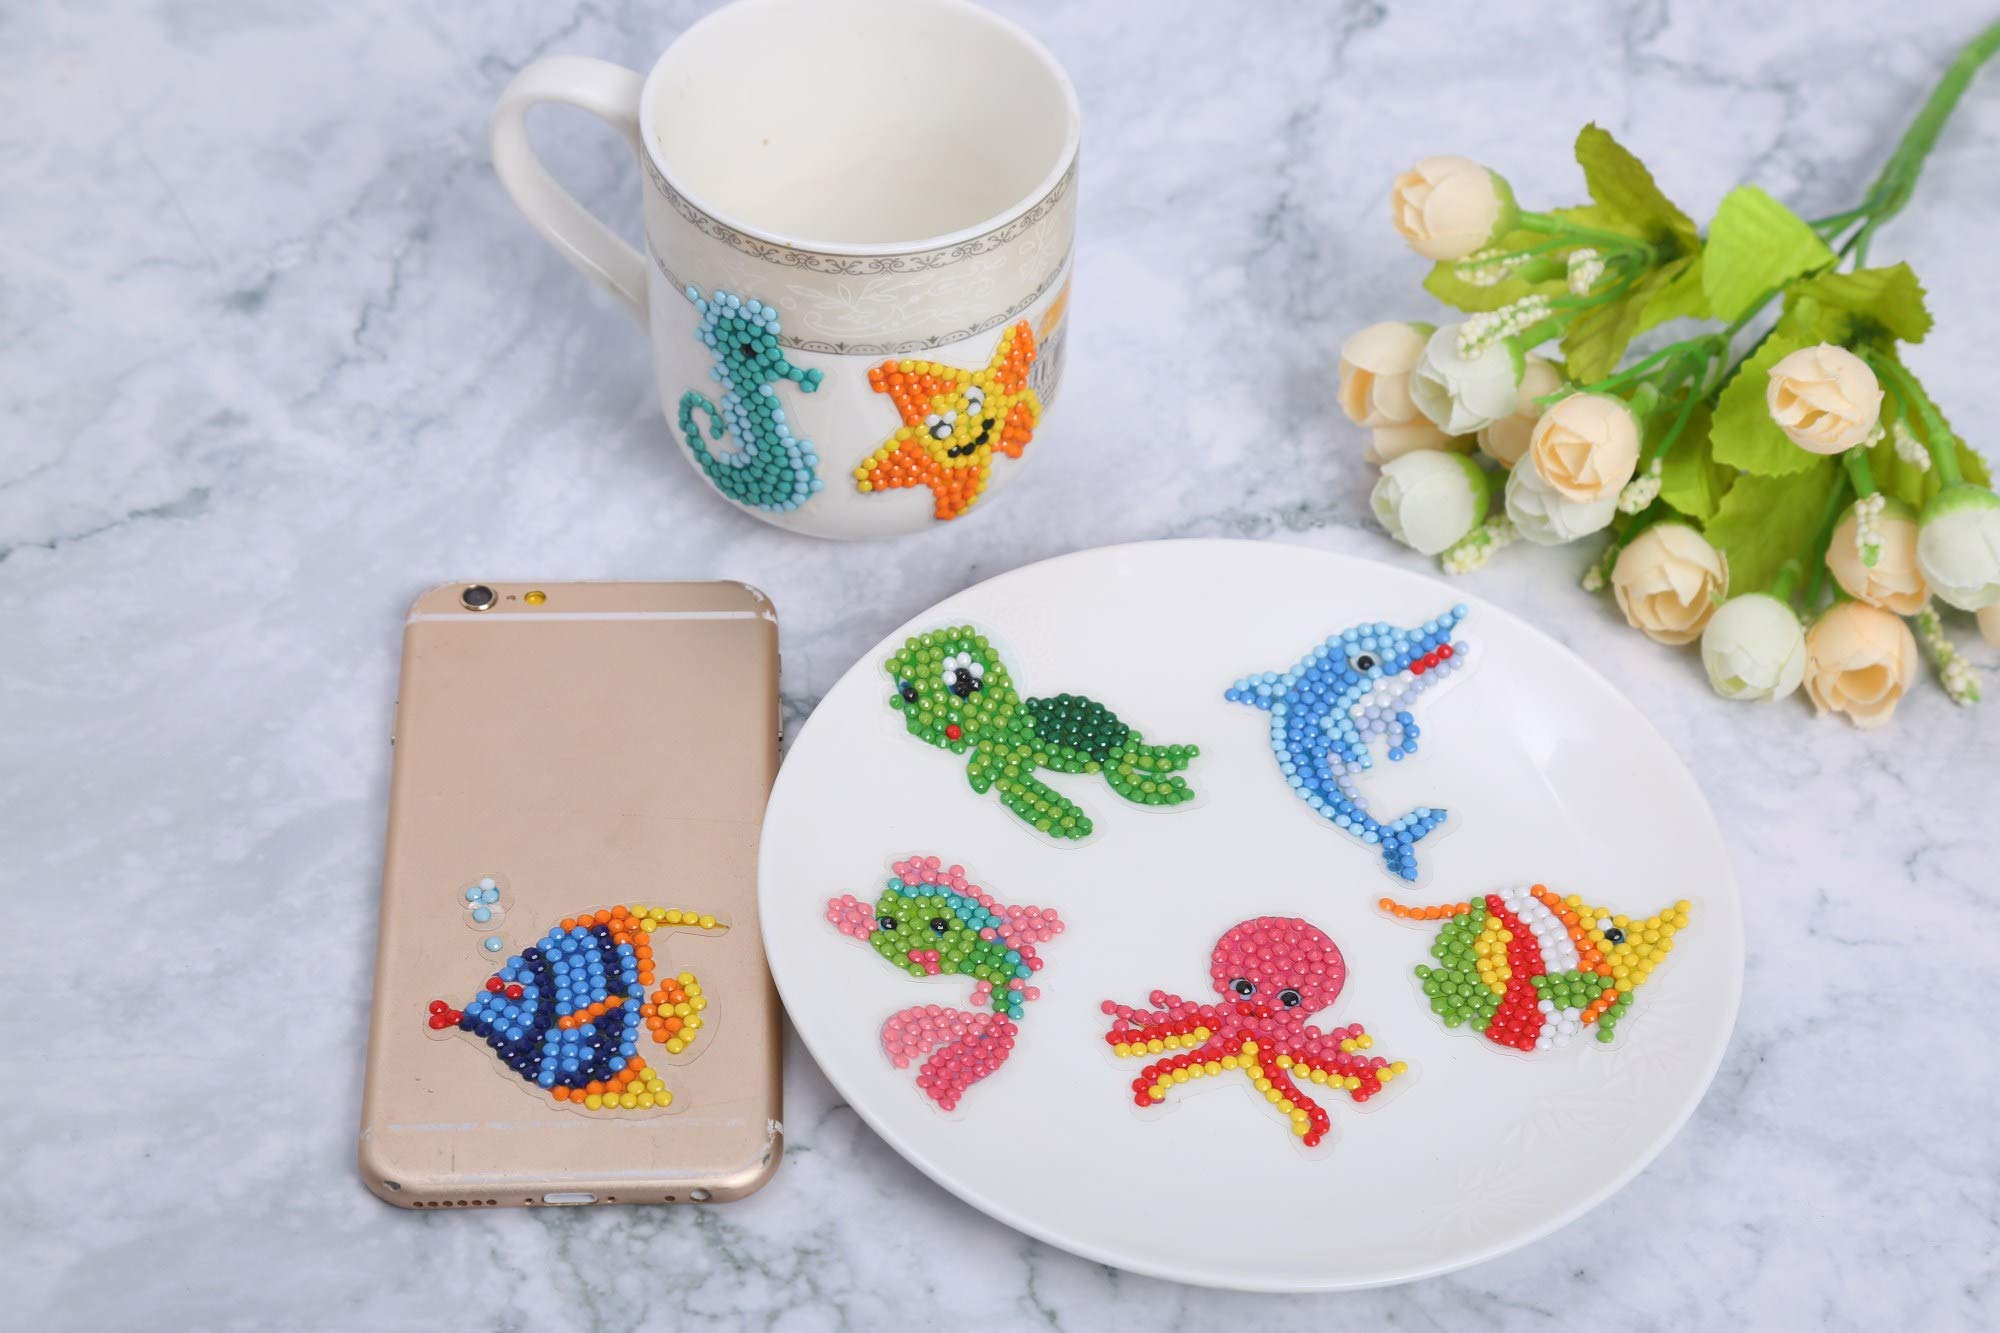 YOMOSA 5D Diamond Painting Kits for Kids DIY Sticker Paint with Diamonds Kits Arts Crafts Kits for Children and Beginner Adults